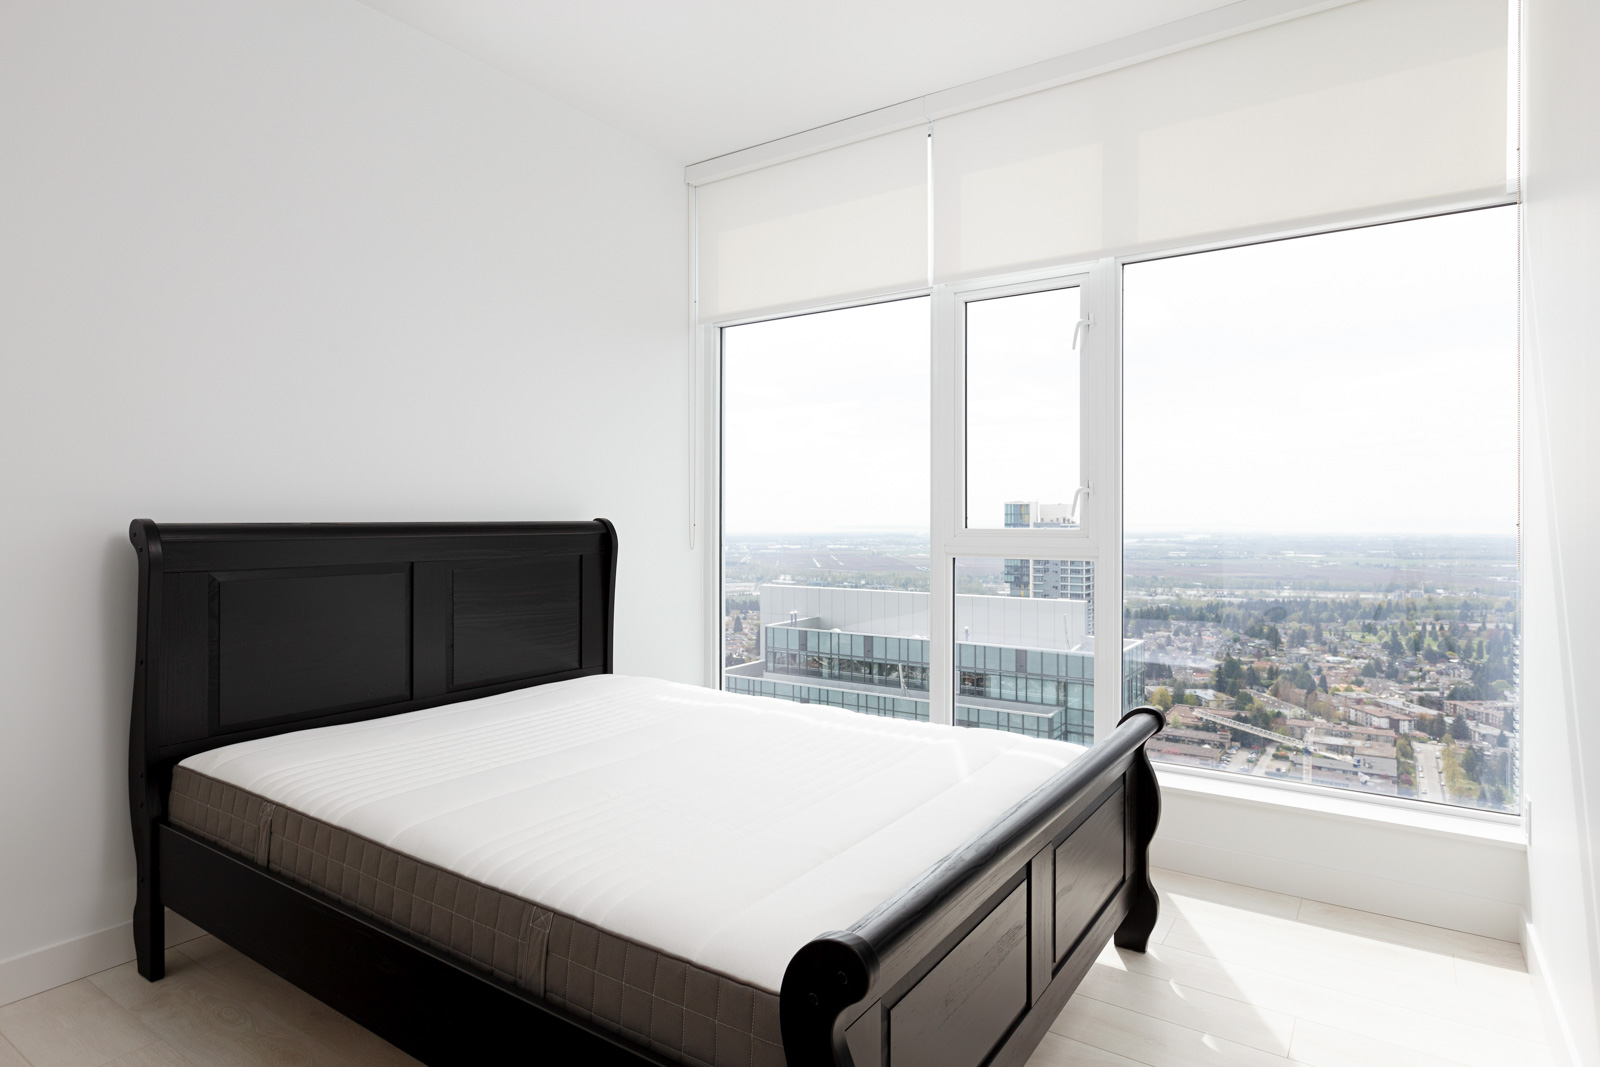 Bedroom with view in Metrotown condo